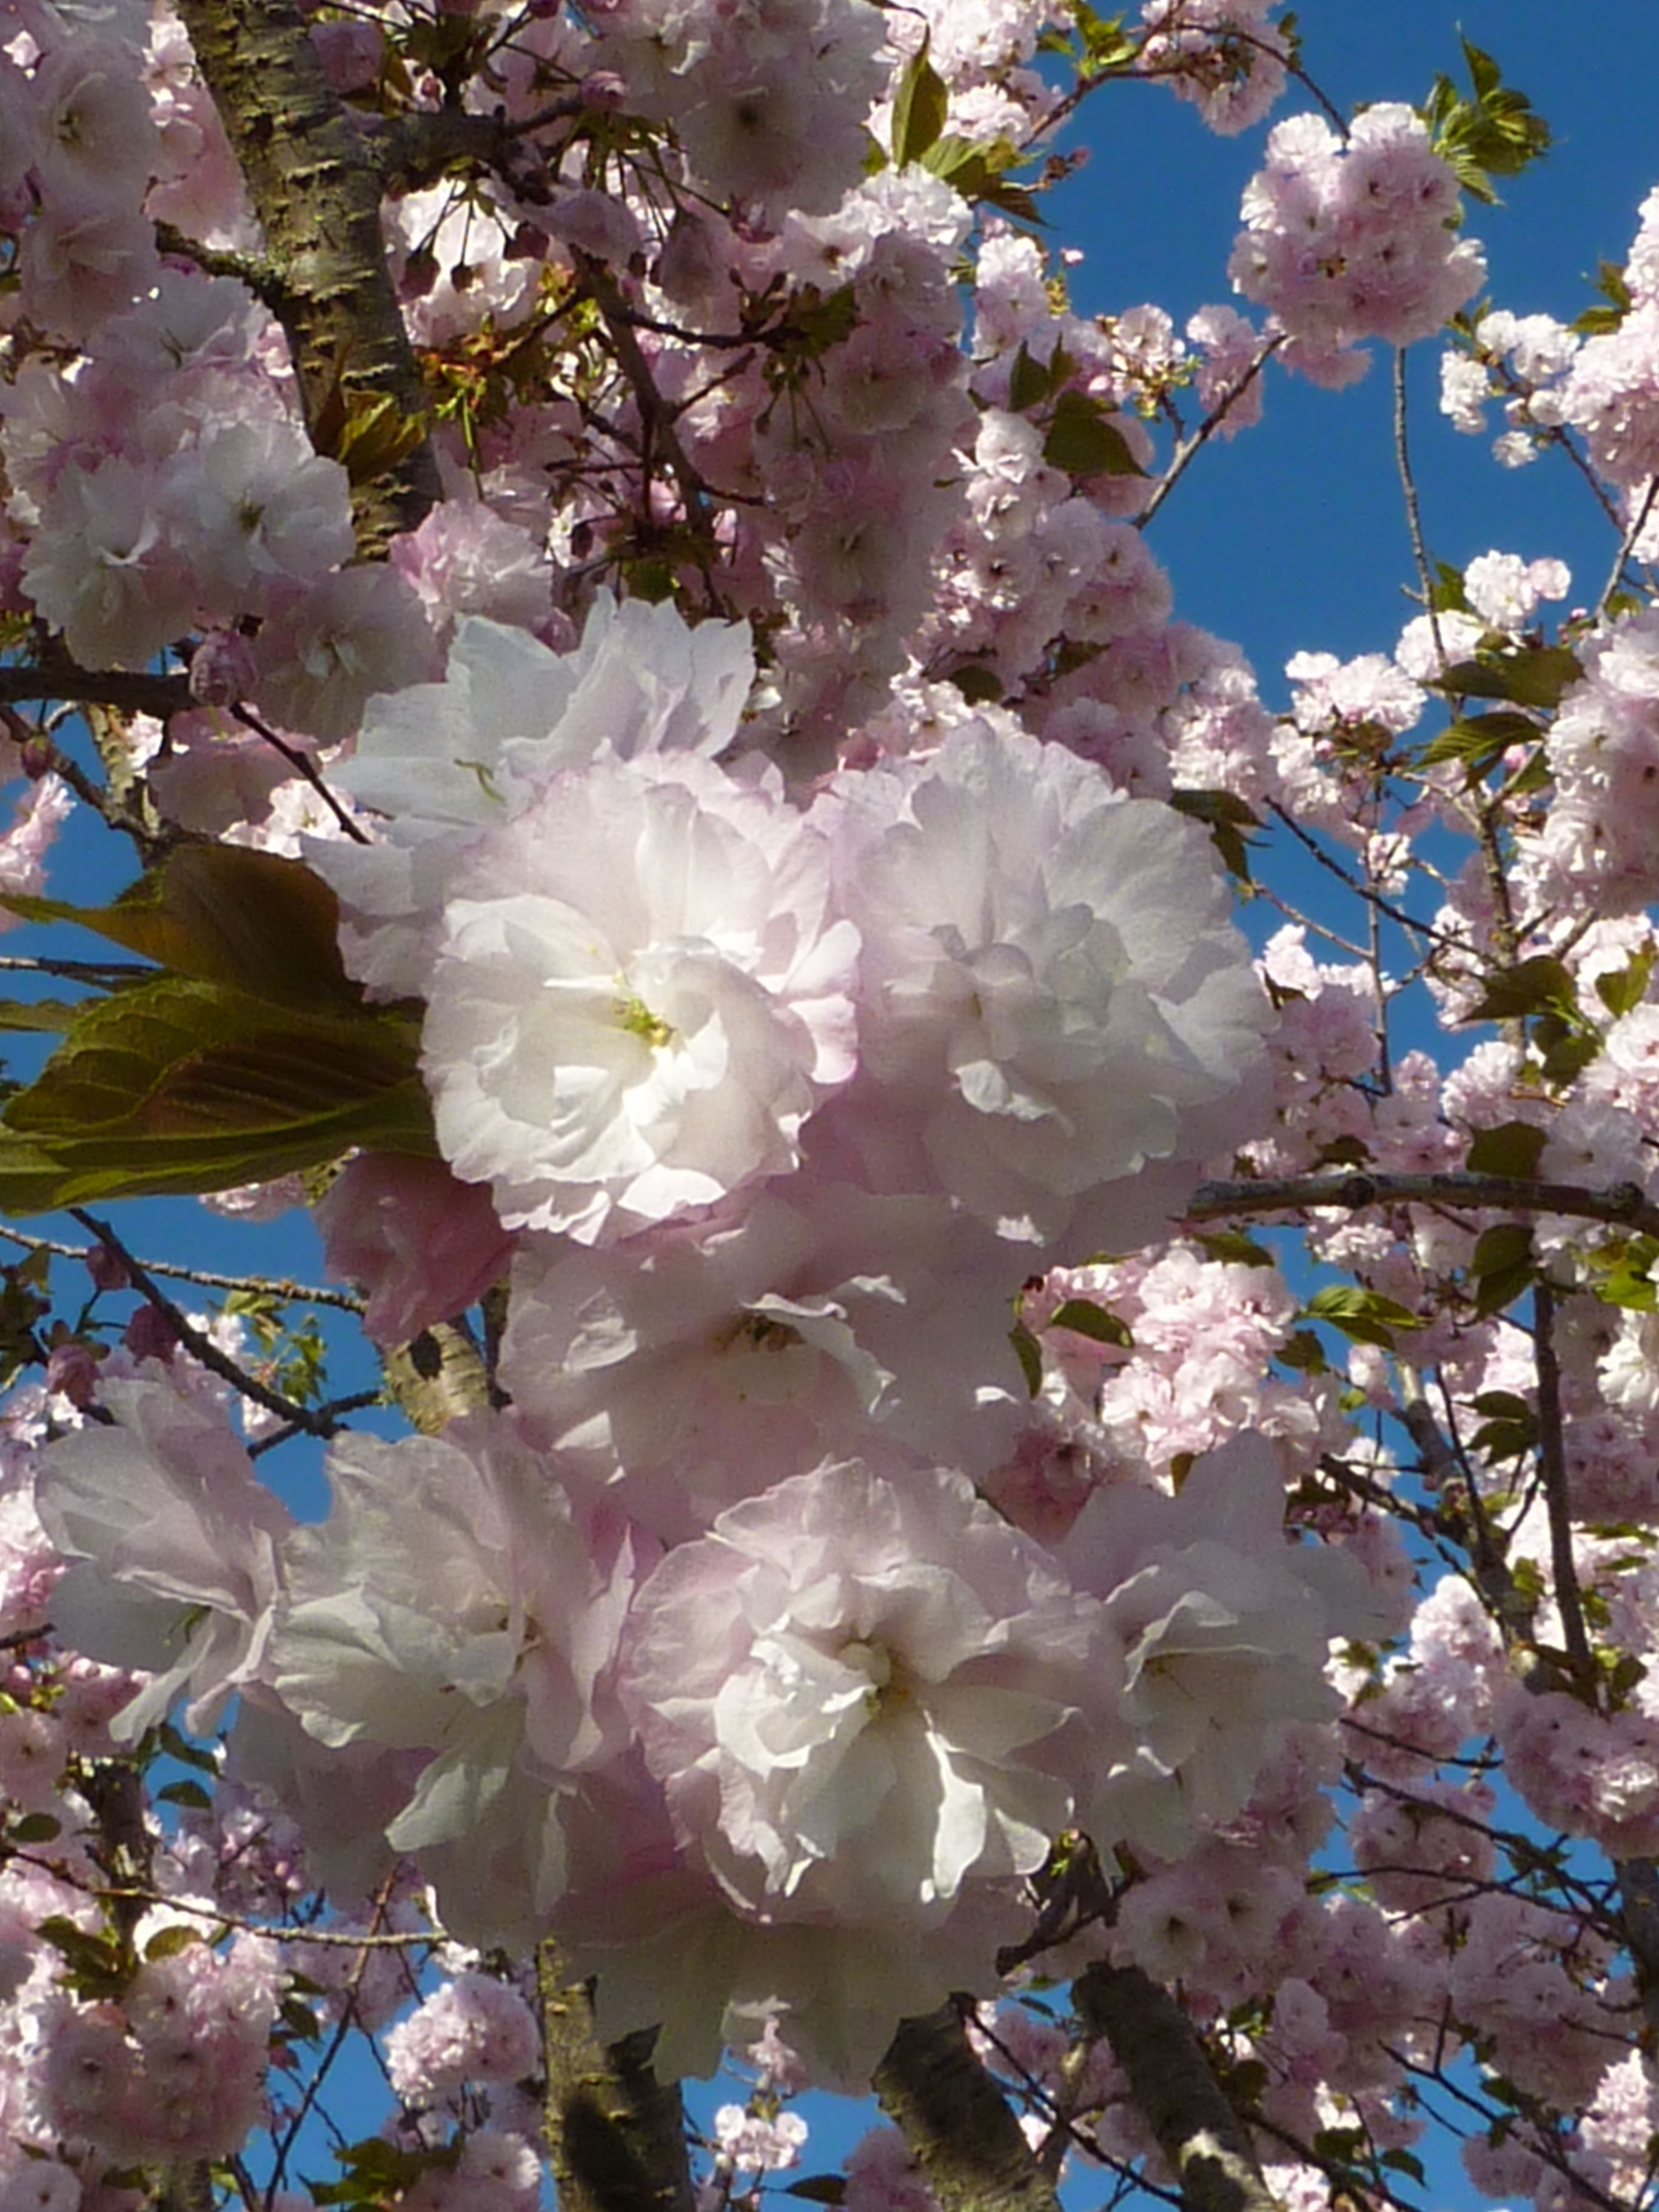 Blossoms on the cherry tree